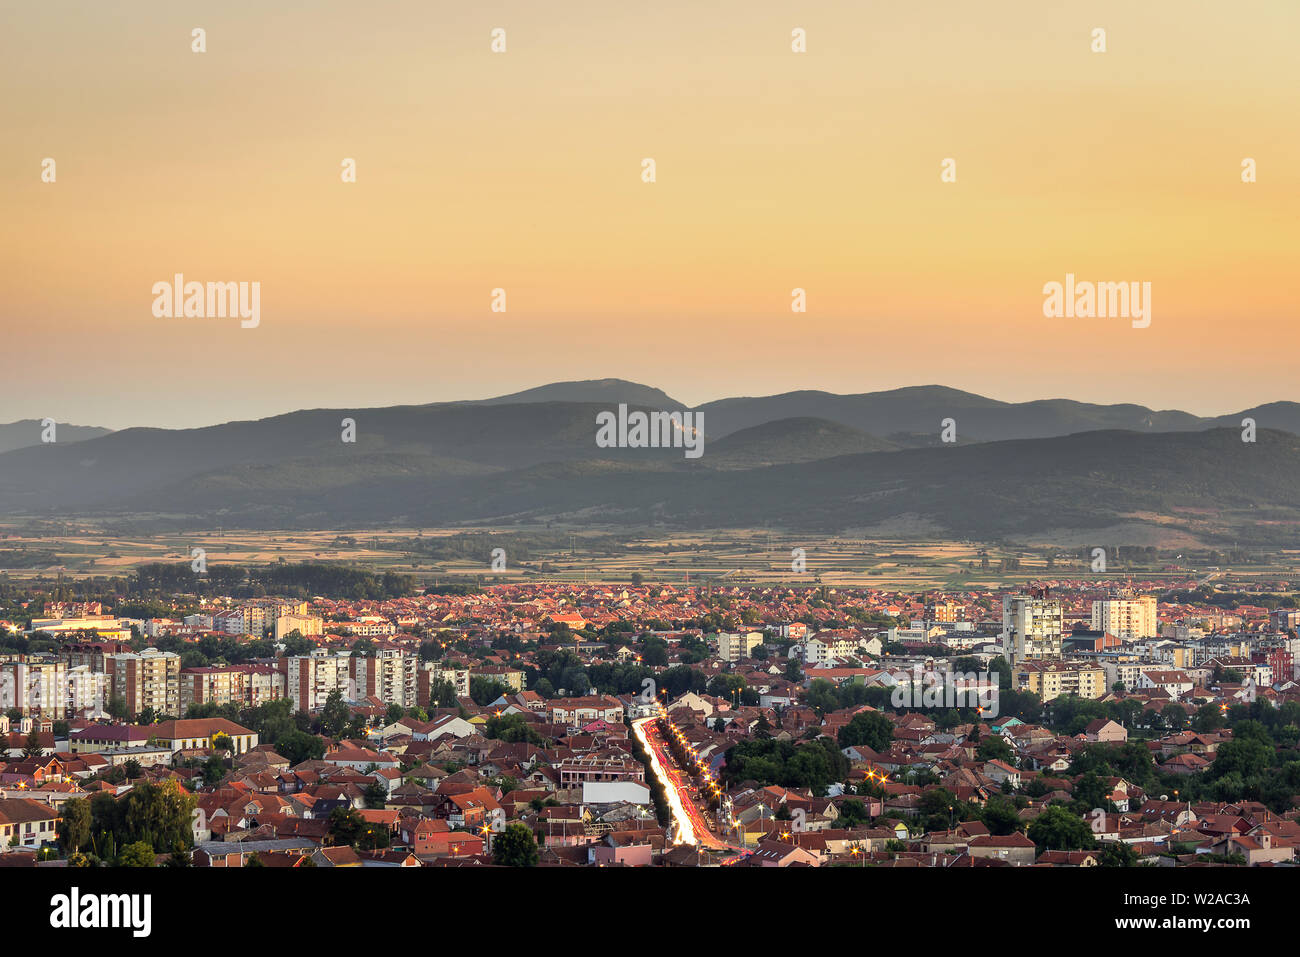 Beautiful golden hour sky above Pirot cityscape with buildings lighten by setting sun, city lights and car trails - Stock Image